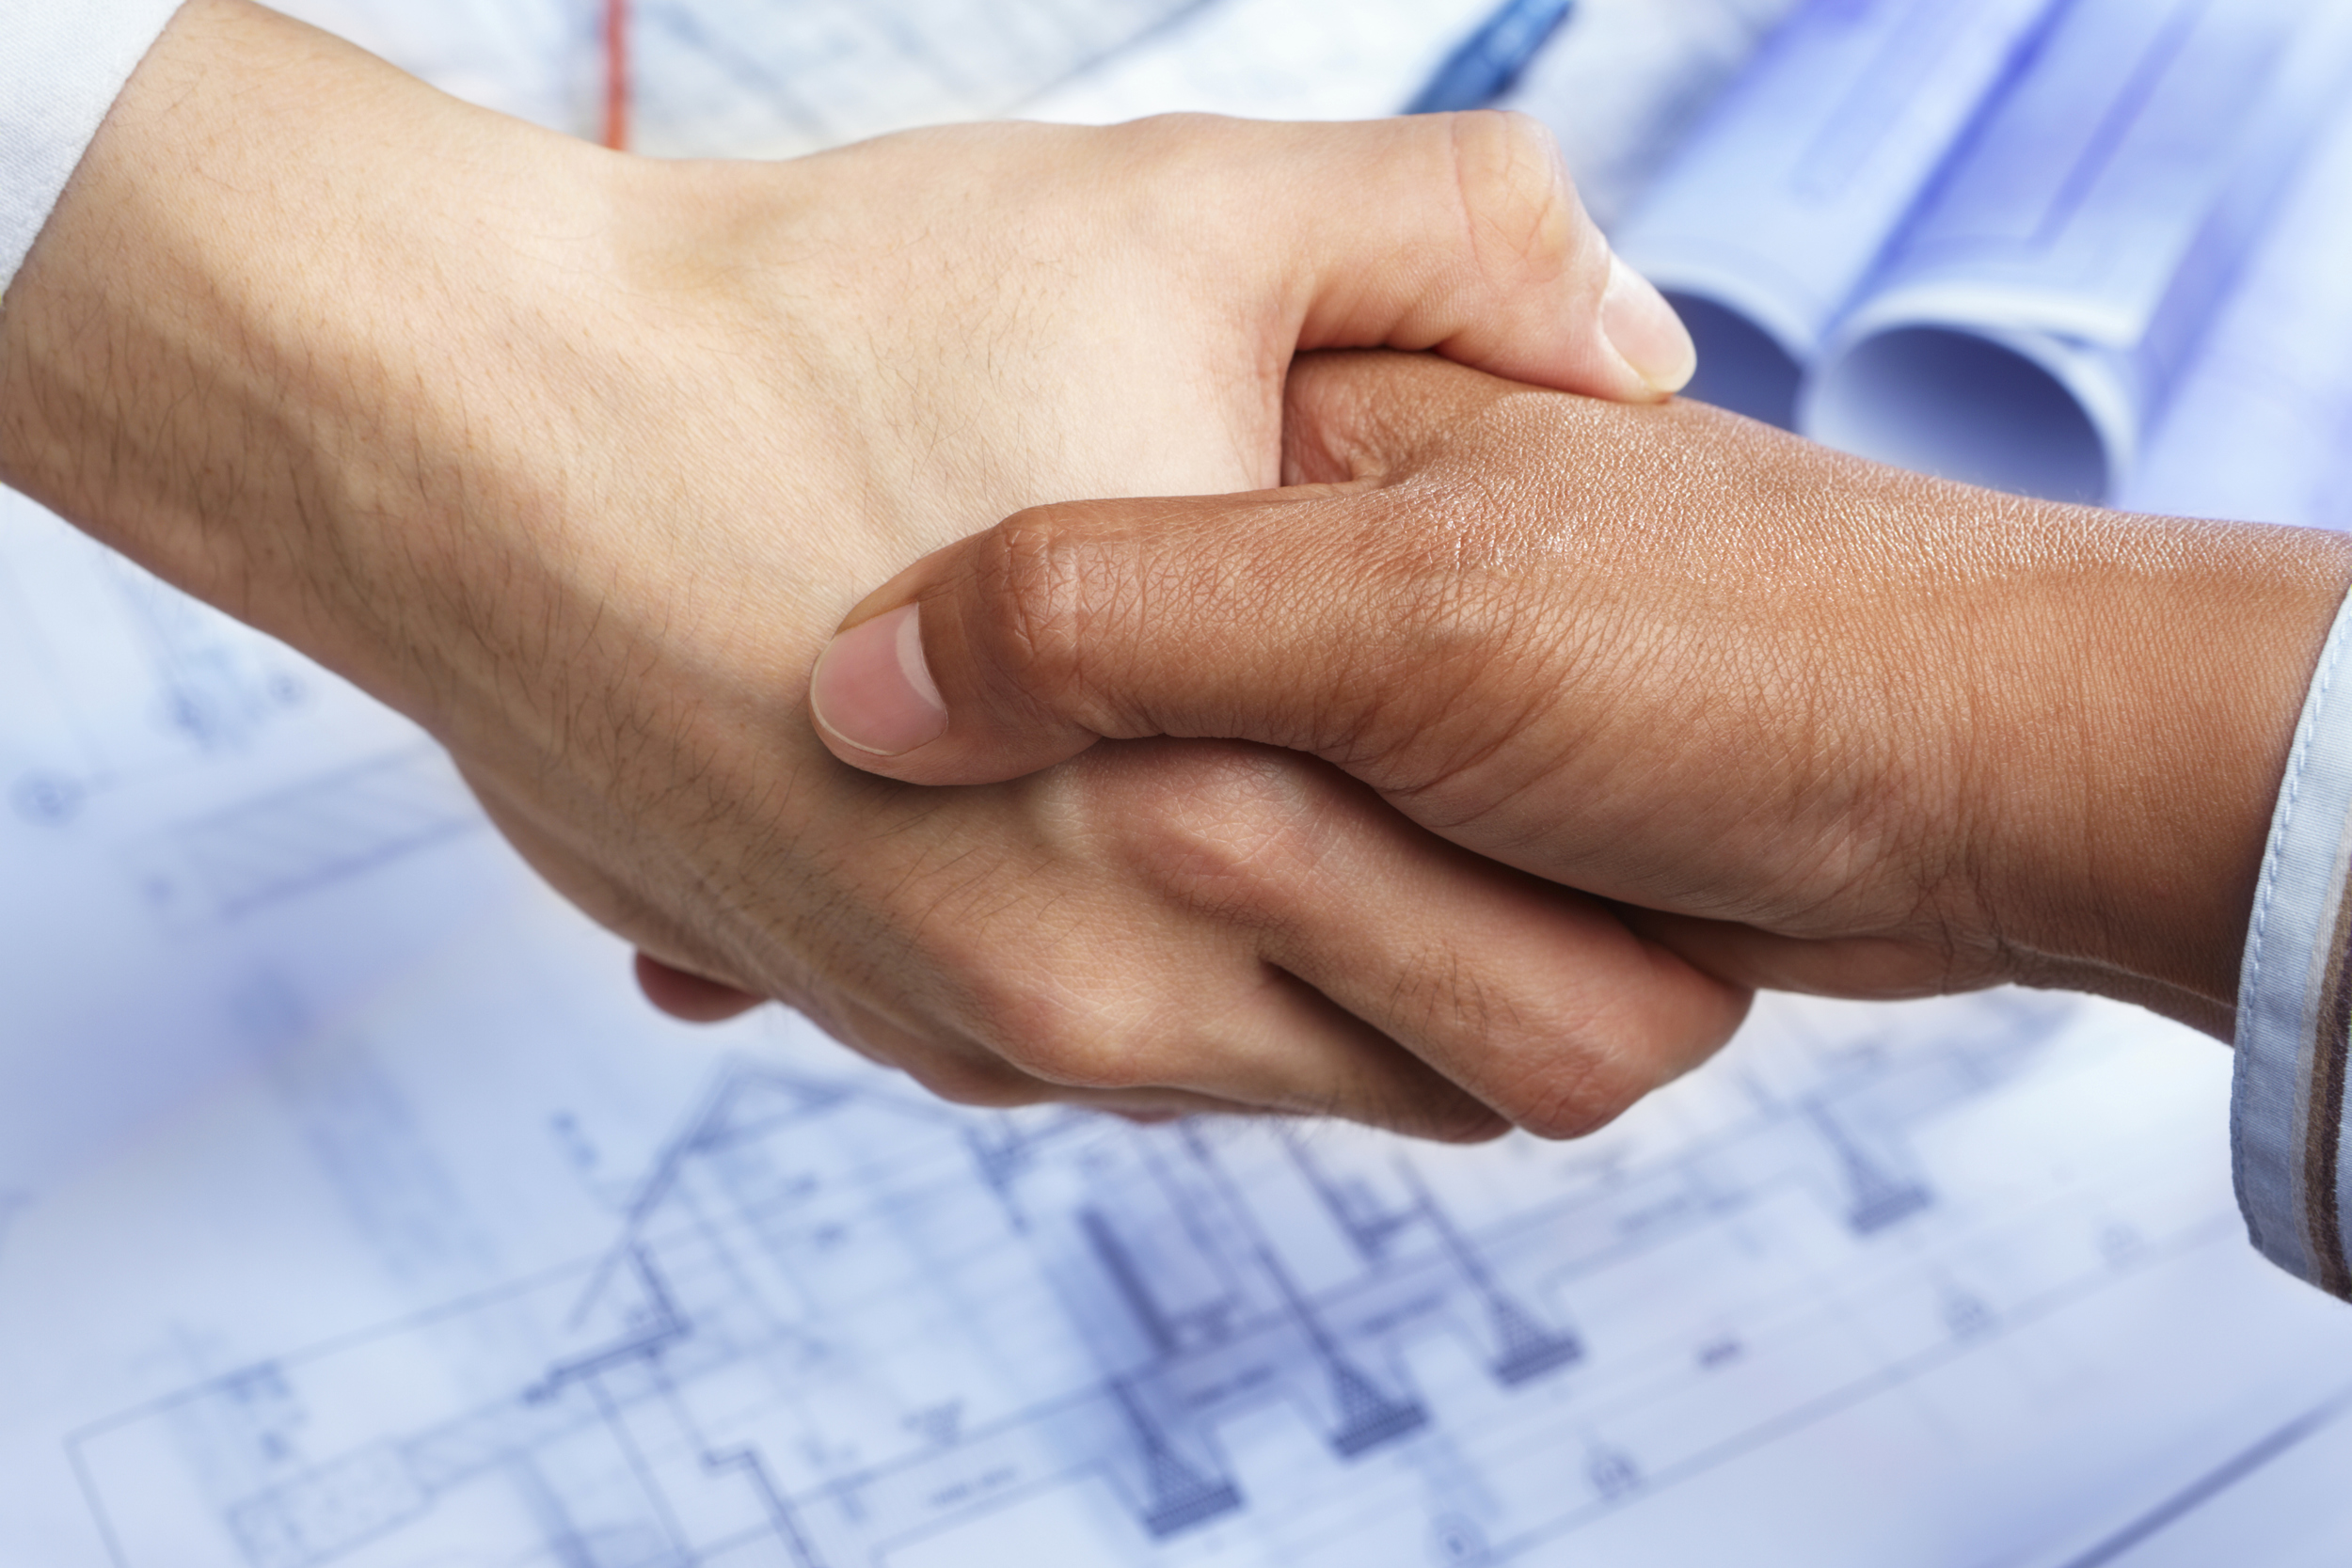 Building relationships one custom home at a time. General Contracting in the Fenton, South Lyon, Novi, Canton, Clarkston, Orion, and other Southwest Michigan areas Custom Integrity